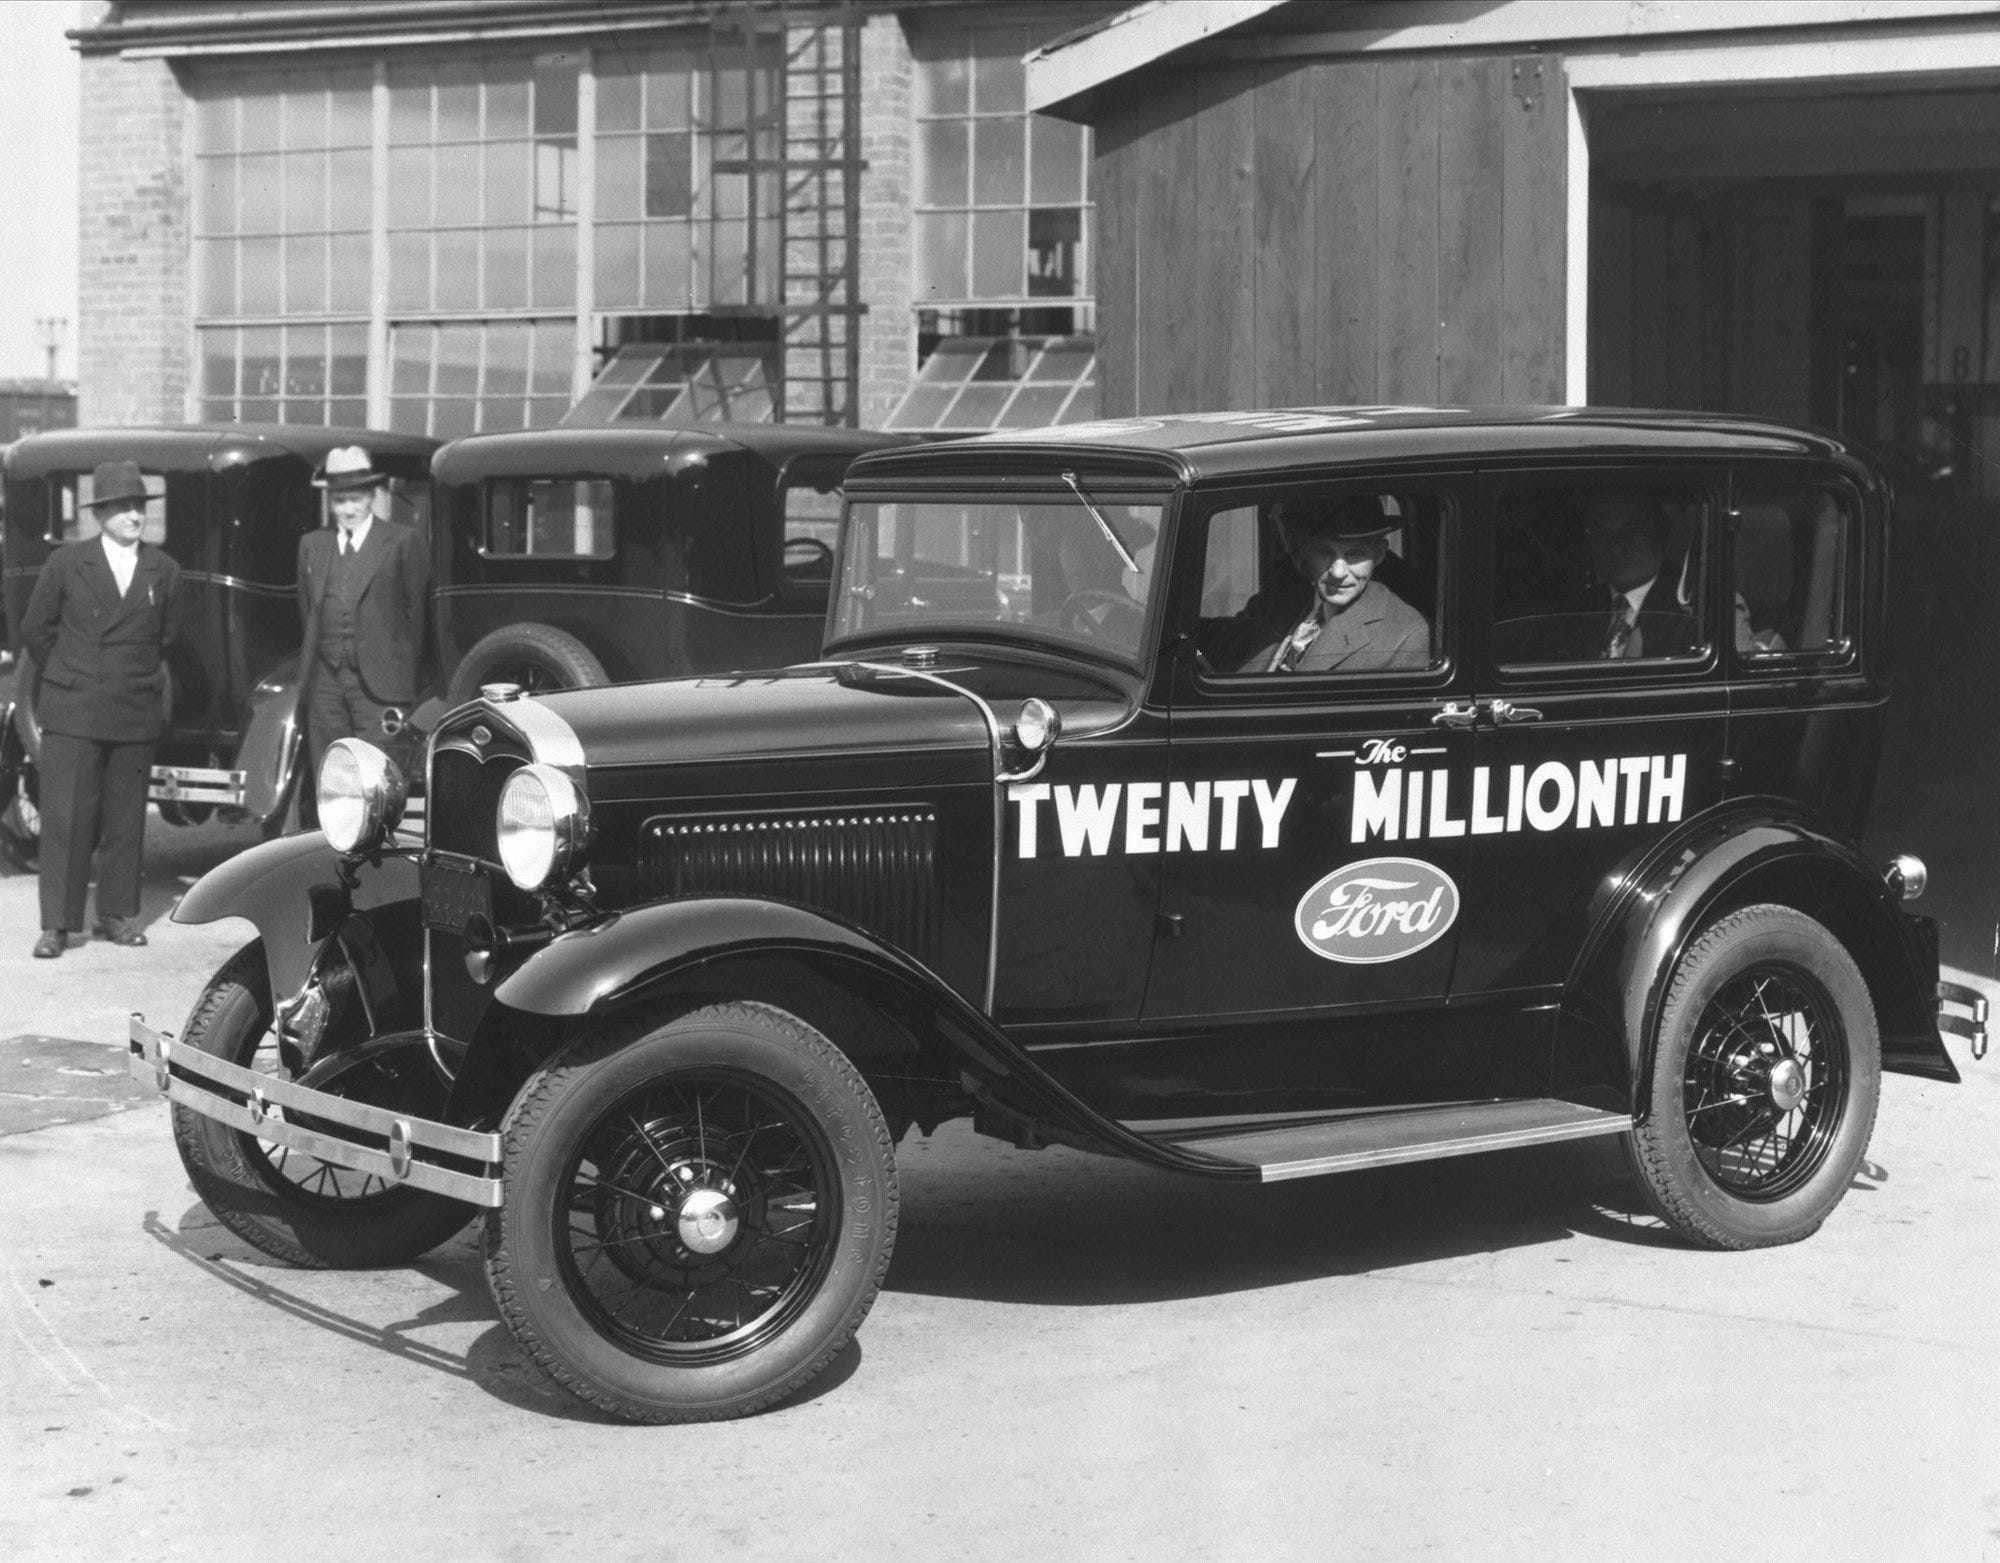 Henry Ford Drives The Automakeru0027s 20 Millionth Vehicle, A Model A, From The Assembly  Line At The Rouge Assembly Plant In Dearborn.